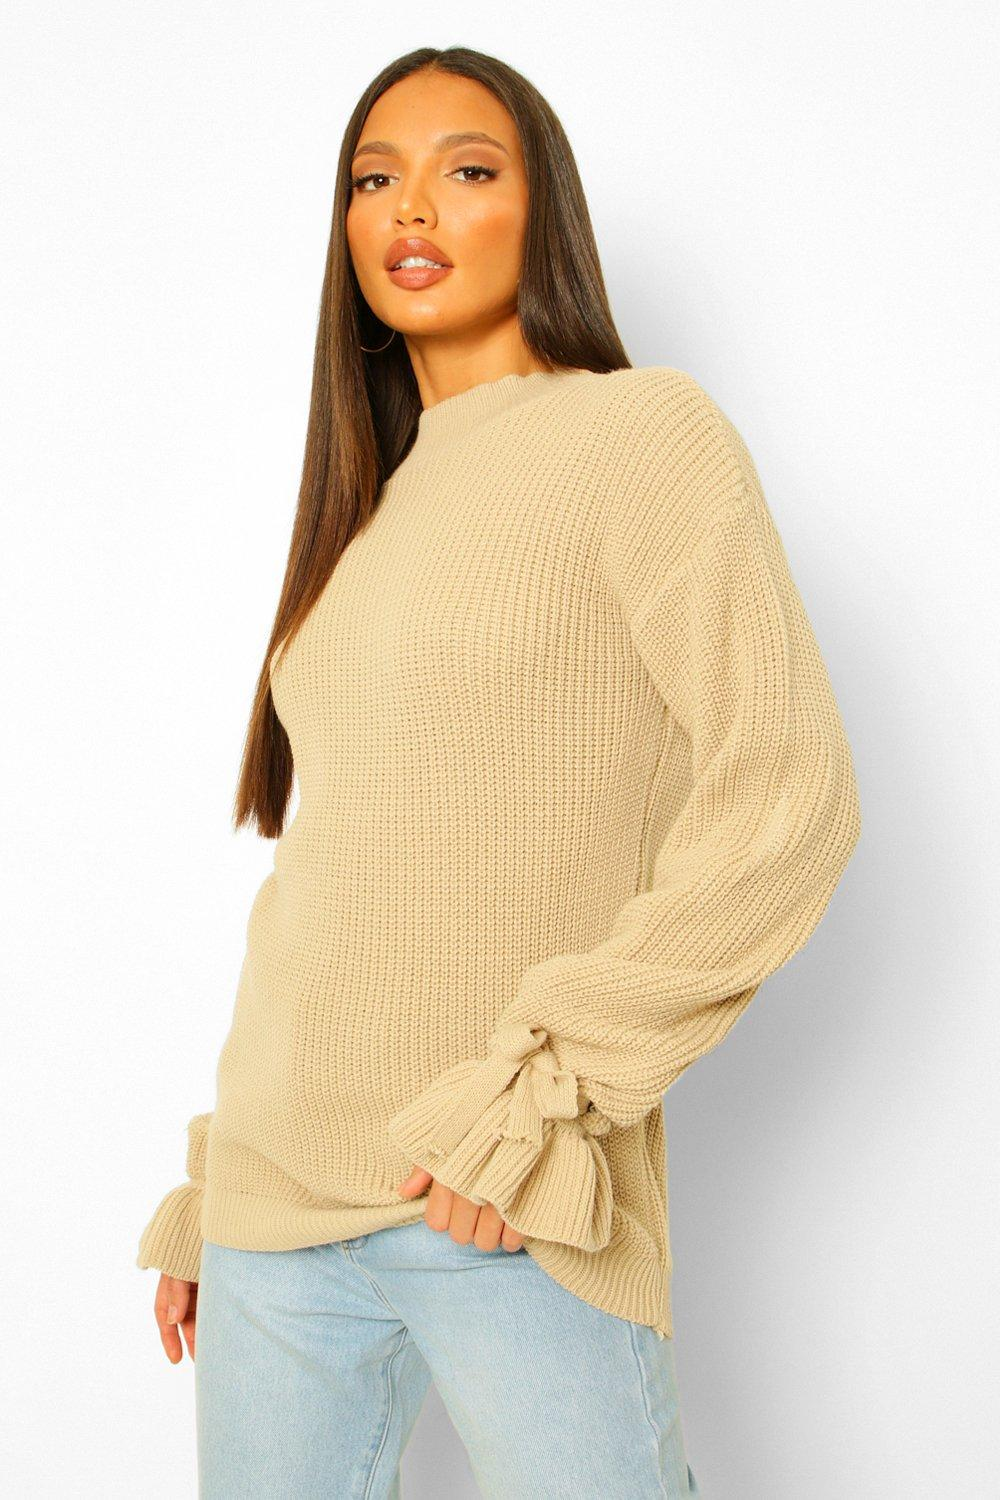 Vintage Sweaters, Retro Sweaters & Cardigan Womens Tall Bell Sleeve Knitted Sweater - Beige - M $14.00 AT vintagedancer.com